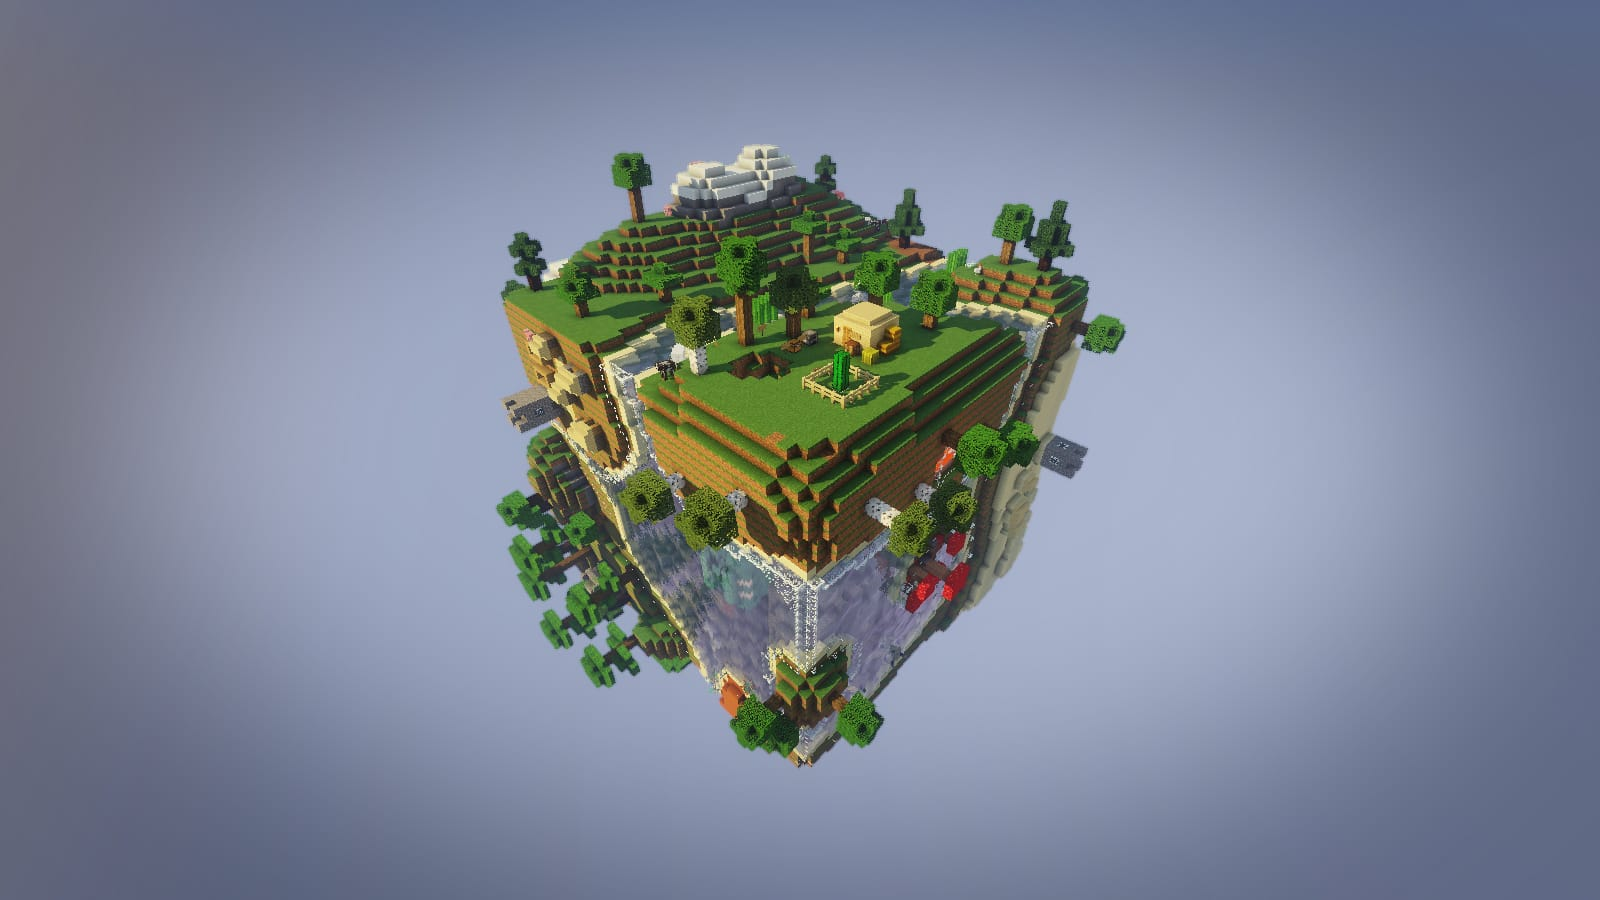 Planet Earth Survival Map 1.13.2 for Minecraft - 9Minecraft.Net